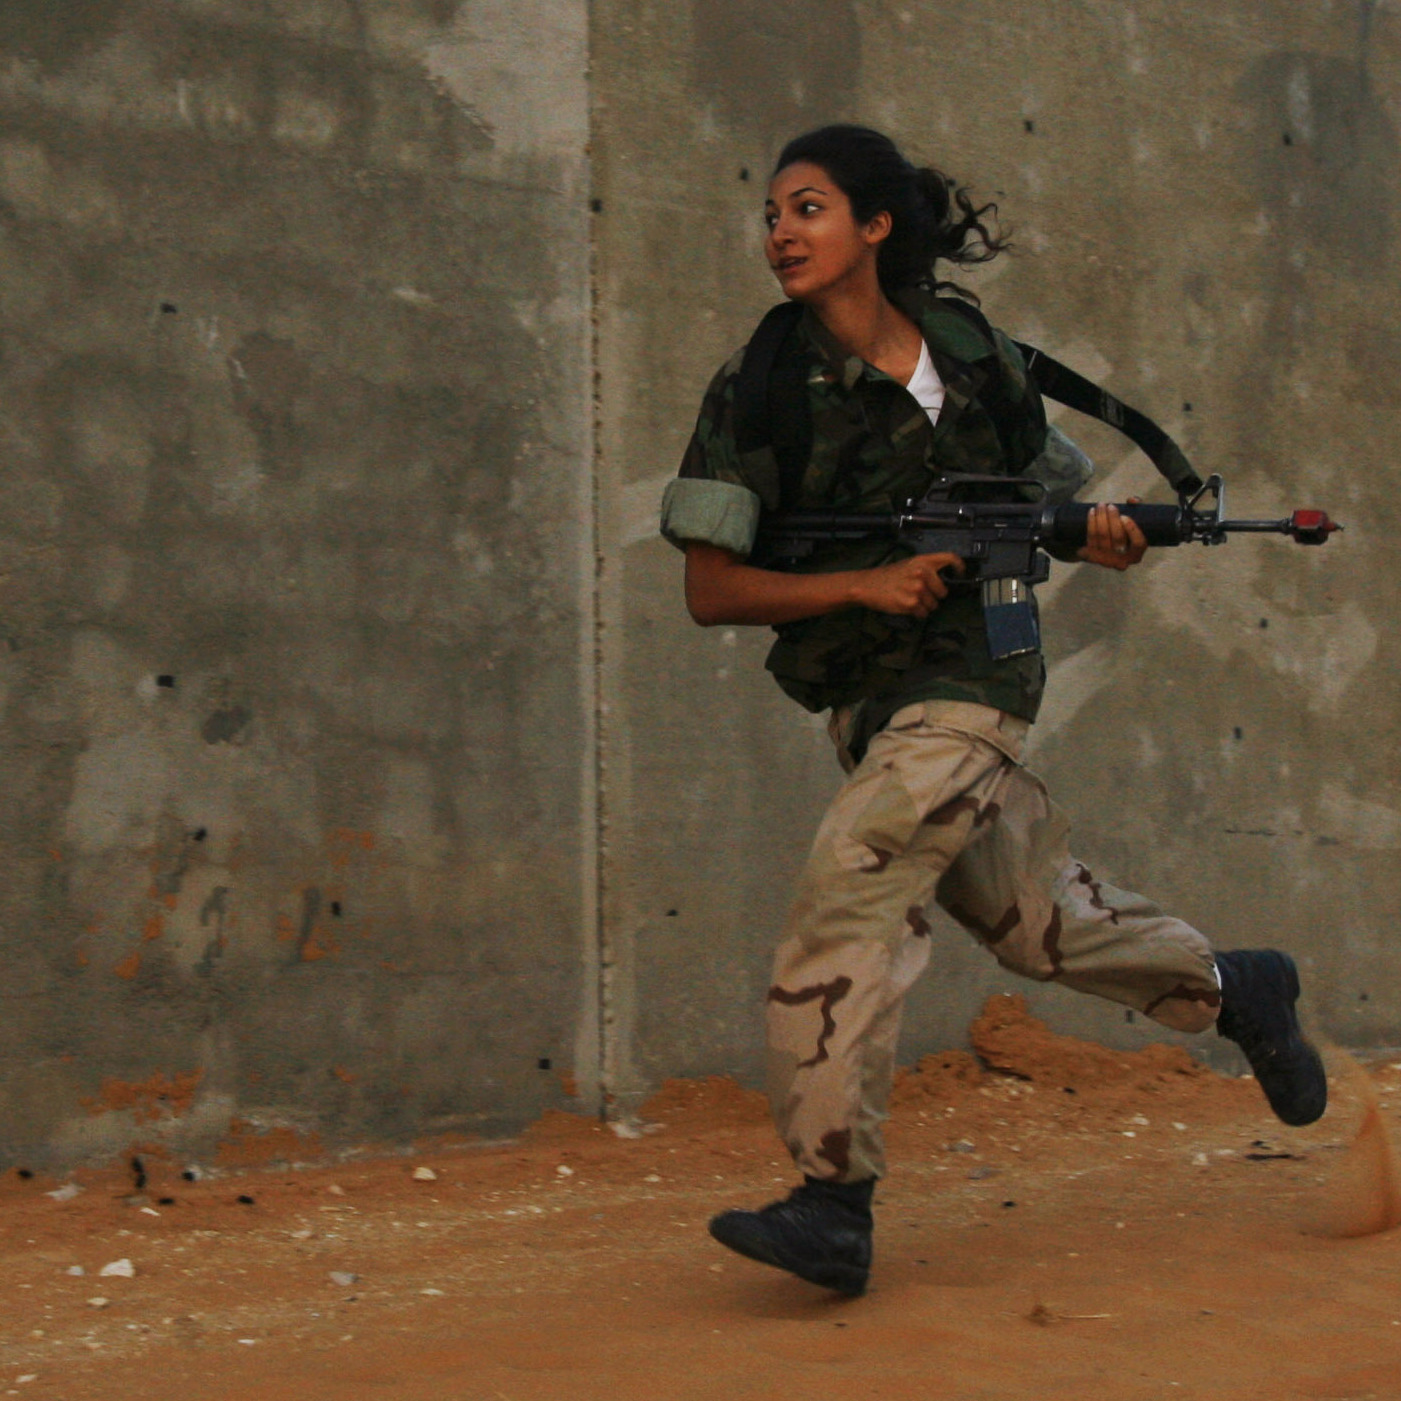 A female Israeli soldier runs during an urban warfare exercise at an army training facility, near Zeelim, Israel on June 19, 2008.